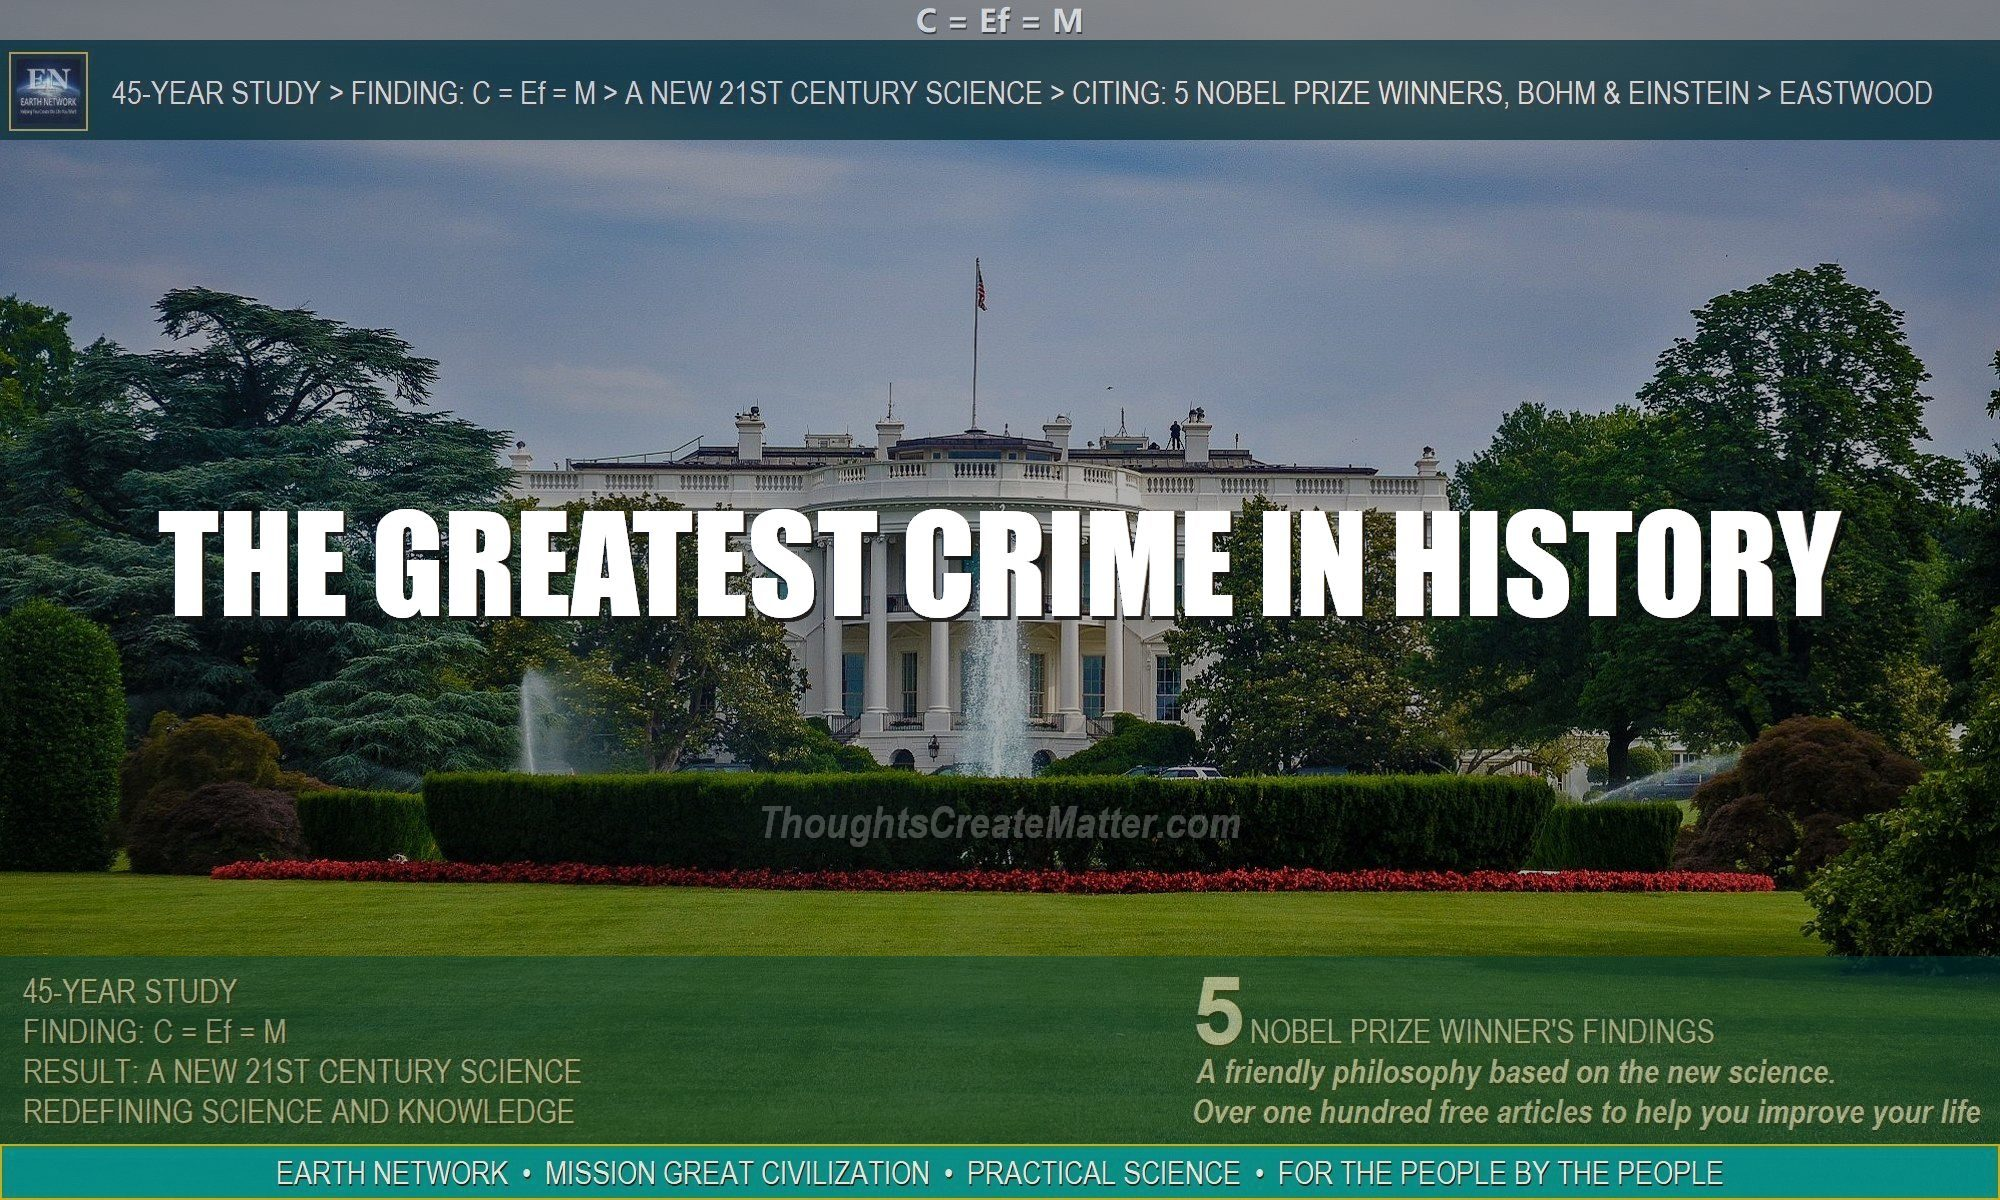 trump-russia-putin-conspiracy-pact-changing-democracy-to-dictatorship-us-constitutional-crisis-true-underlying-root-cause-reason-undermining-by-president-criminal-organization-boss-leader-bully